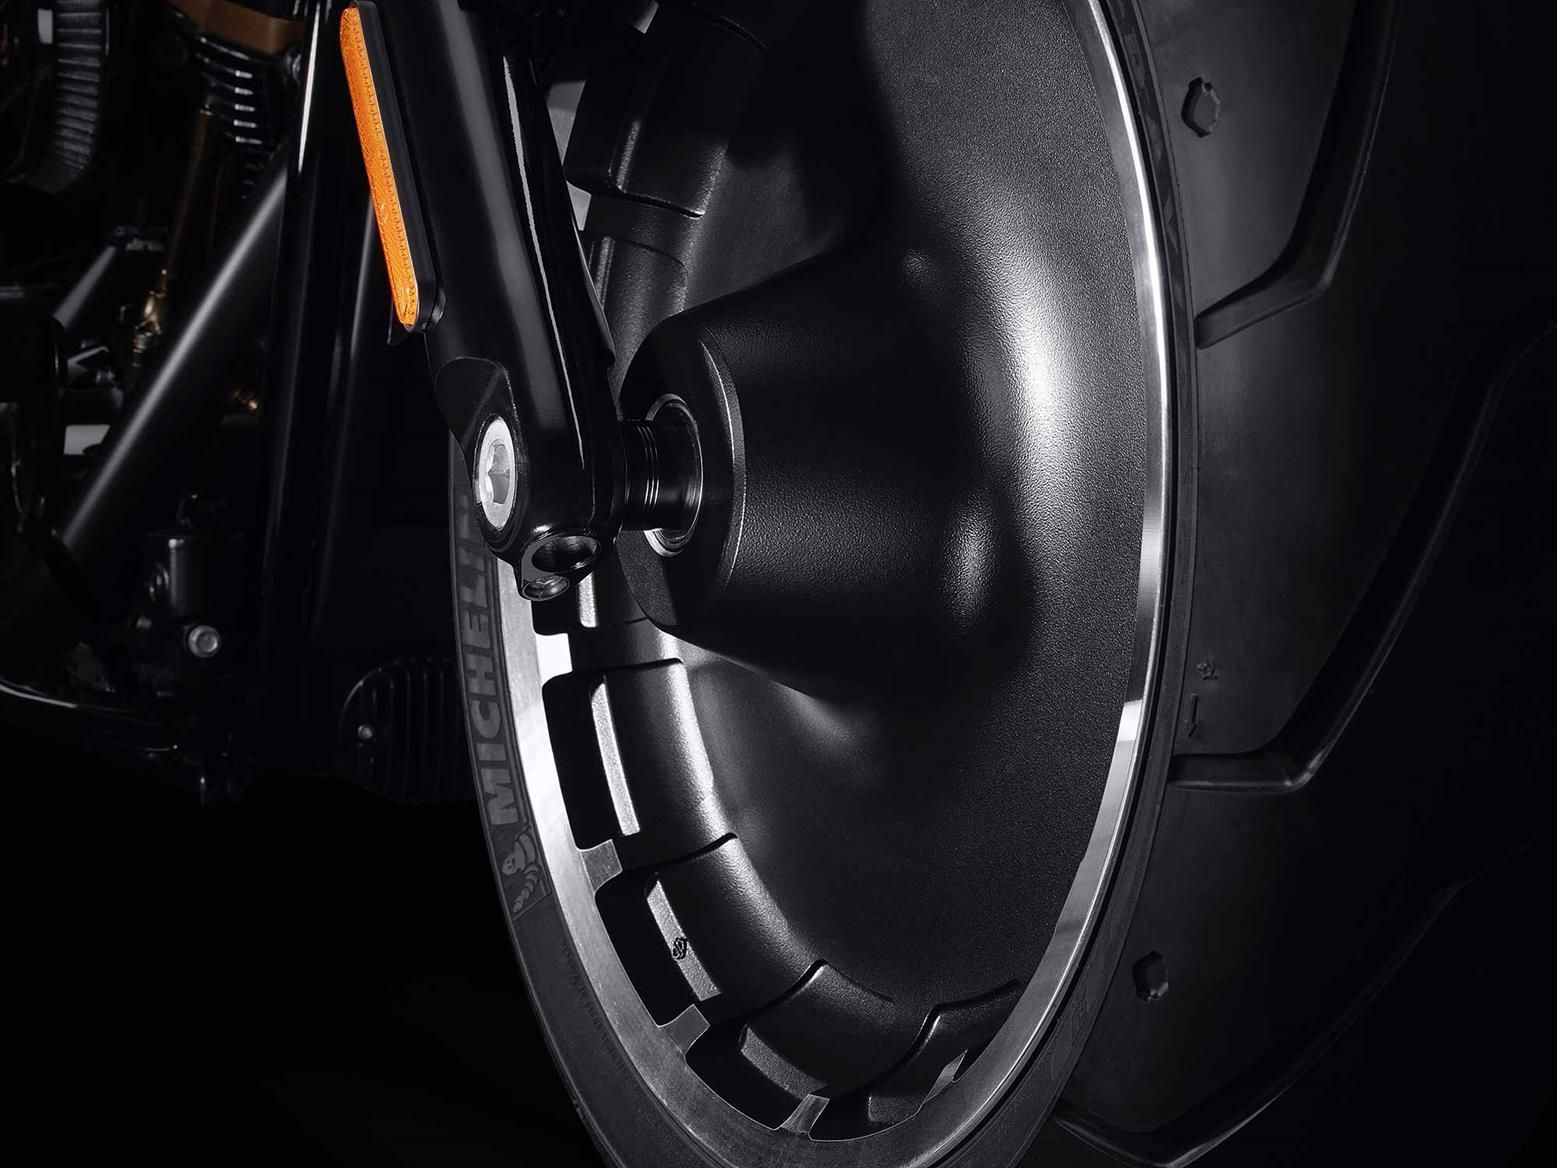 Solid 'Lakester' rims feature on the special